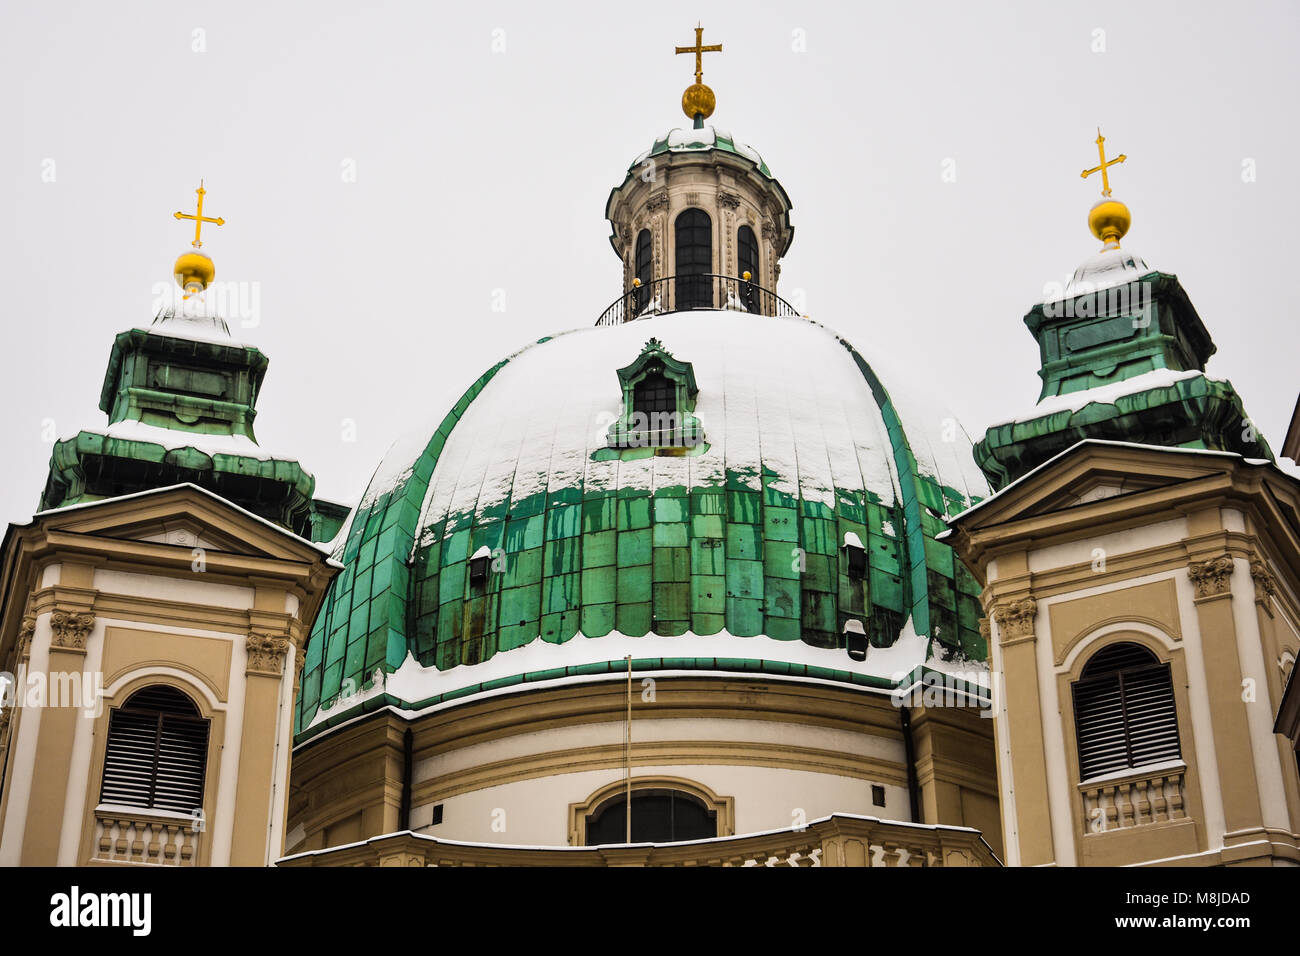 Vienna, Austria. February 1, 2017. Dome of Peterskirche (St. Peter's Church), a Baroque Roman Catholic parish - Stock Image